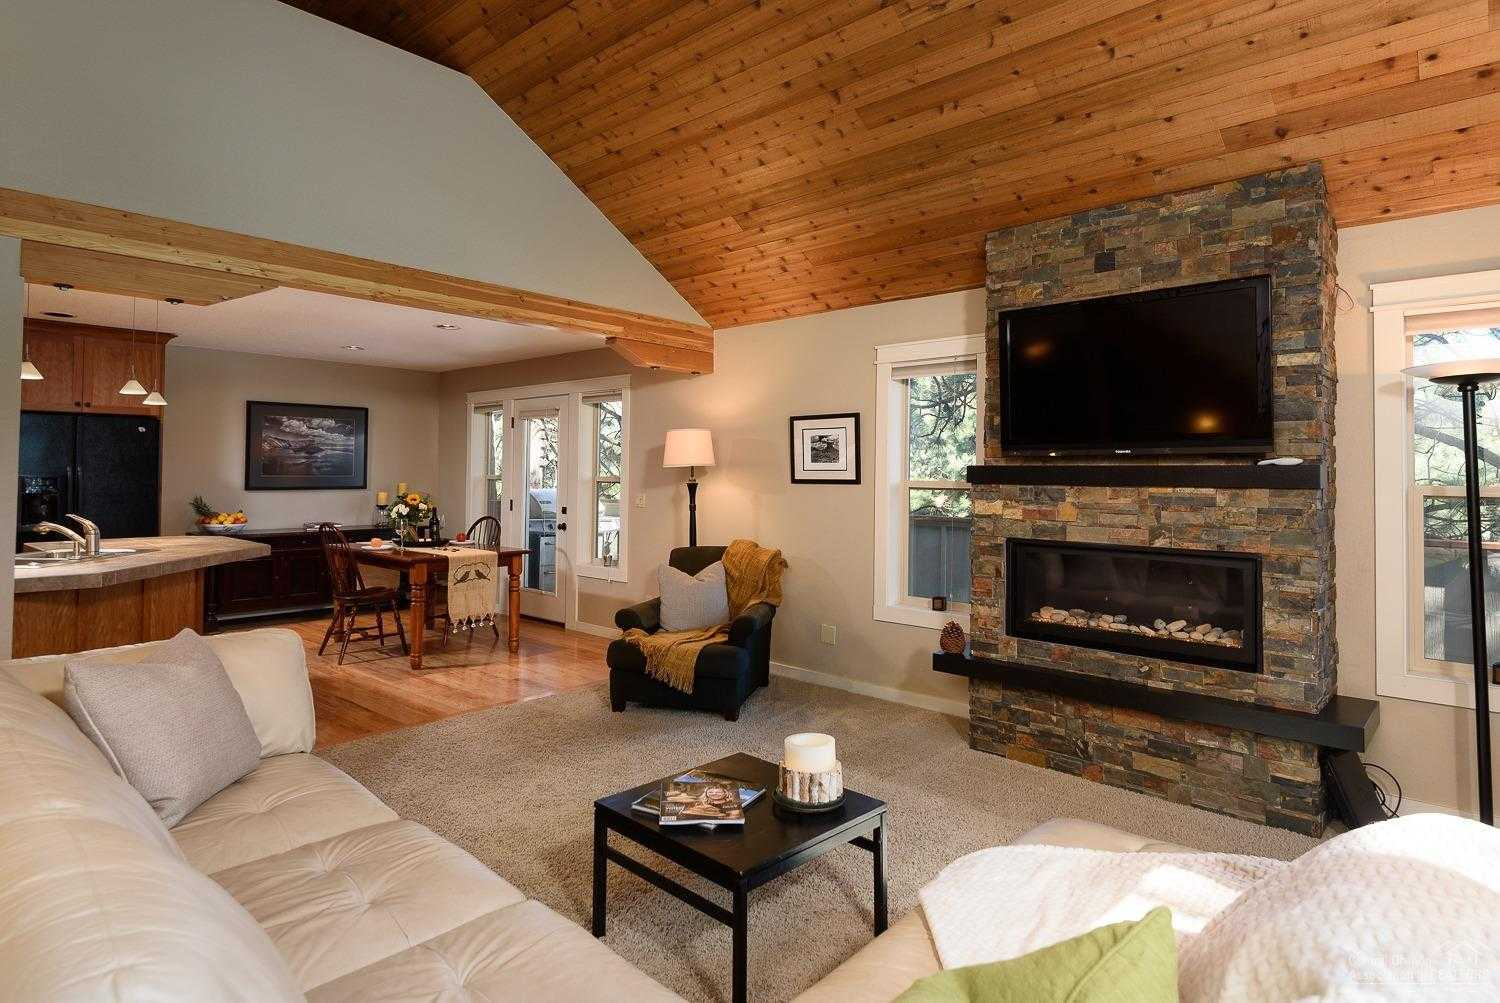 $499,000 - 3Br/2Ba -  for Sale in Bend